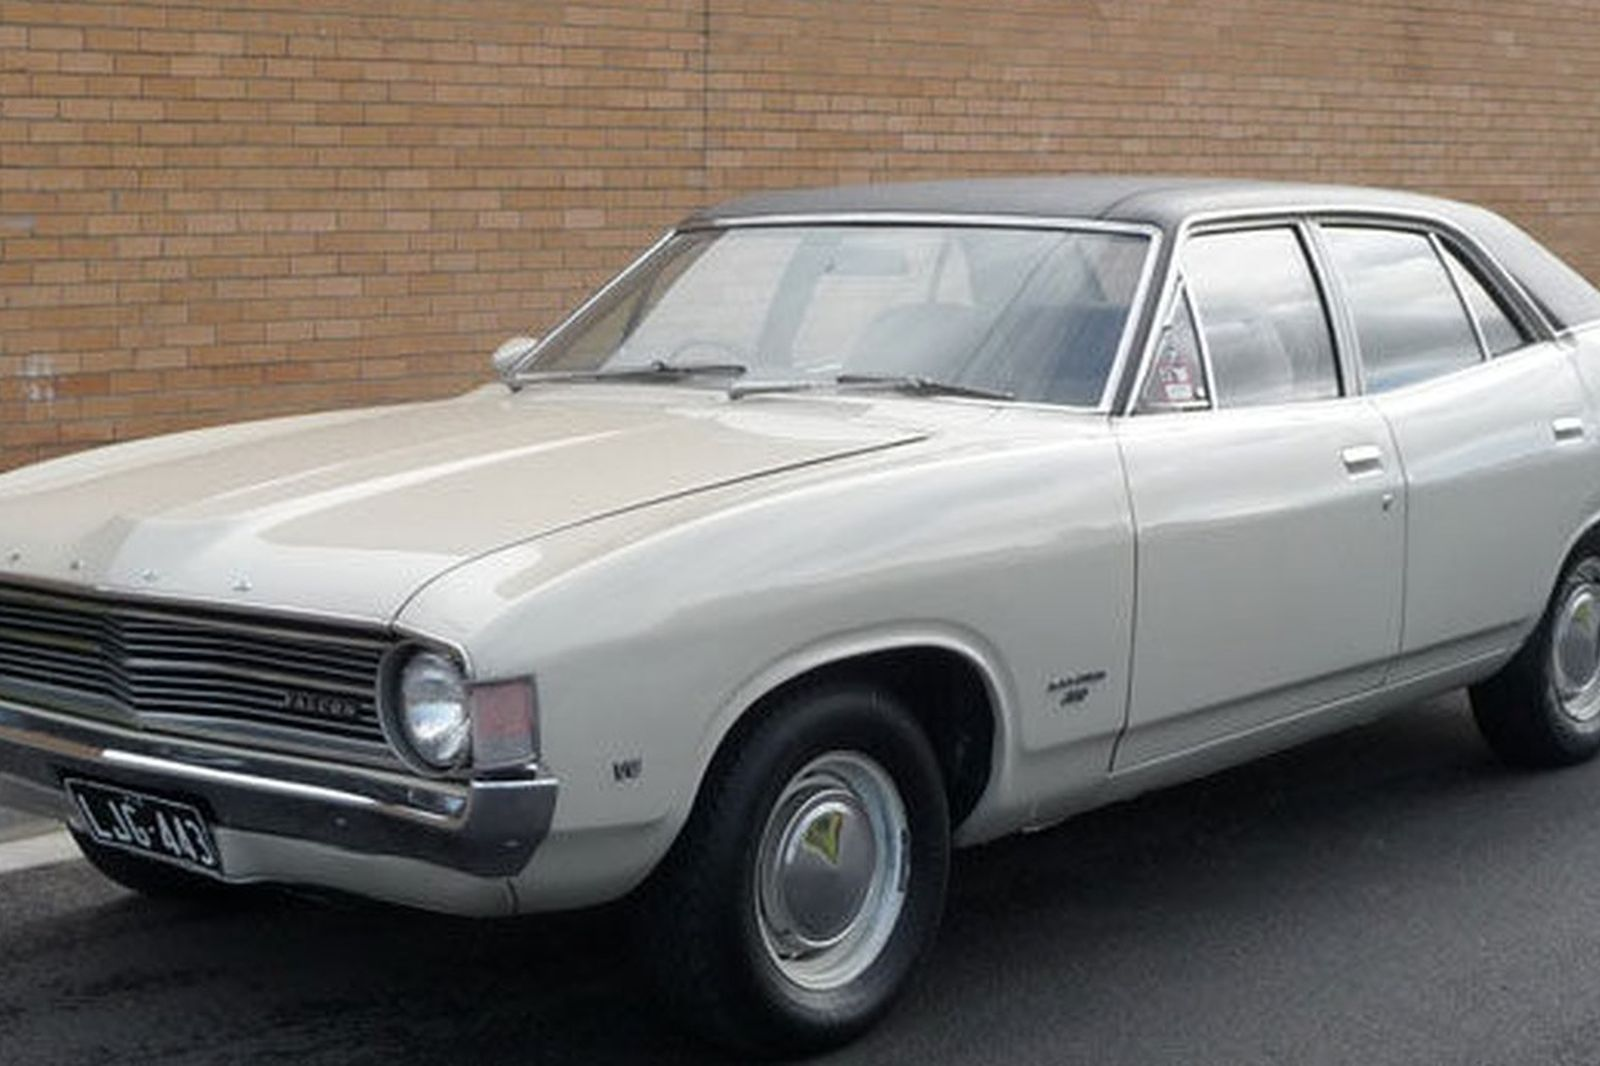 59418 in addition The 2013 Delorean Ev Back From The Future as well Tremendas Fotos De Ford Falcon together with HVLEP9N6AVX9125P furthermore Watch. on ford falcon xb gt coupe